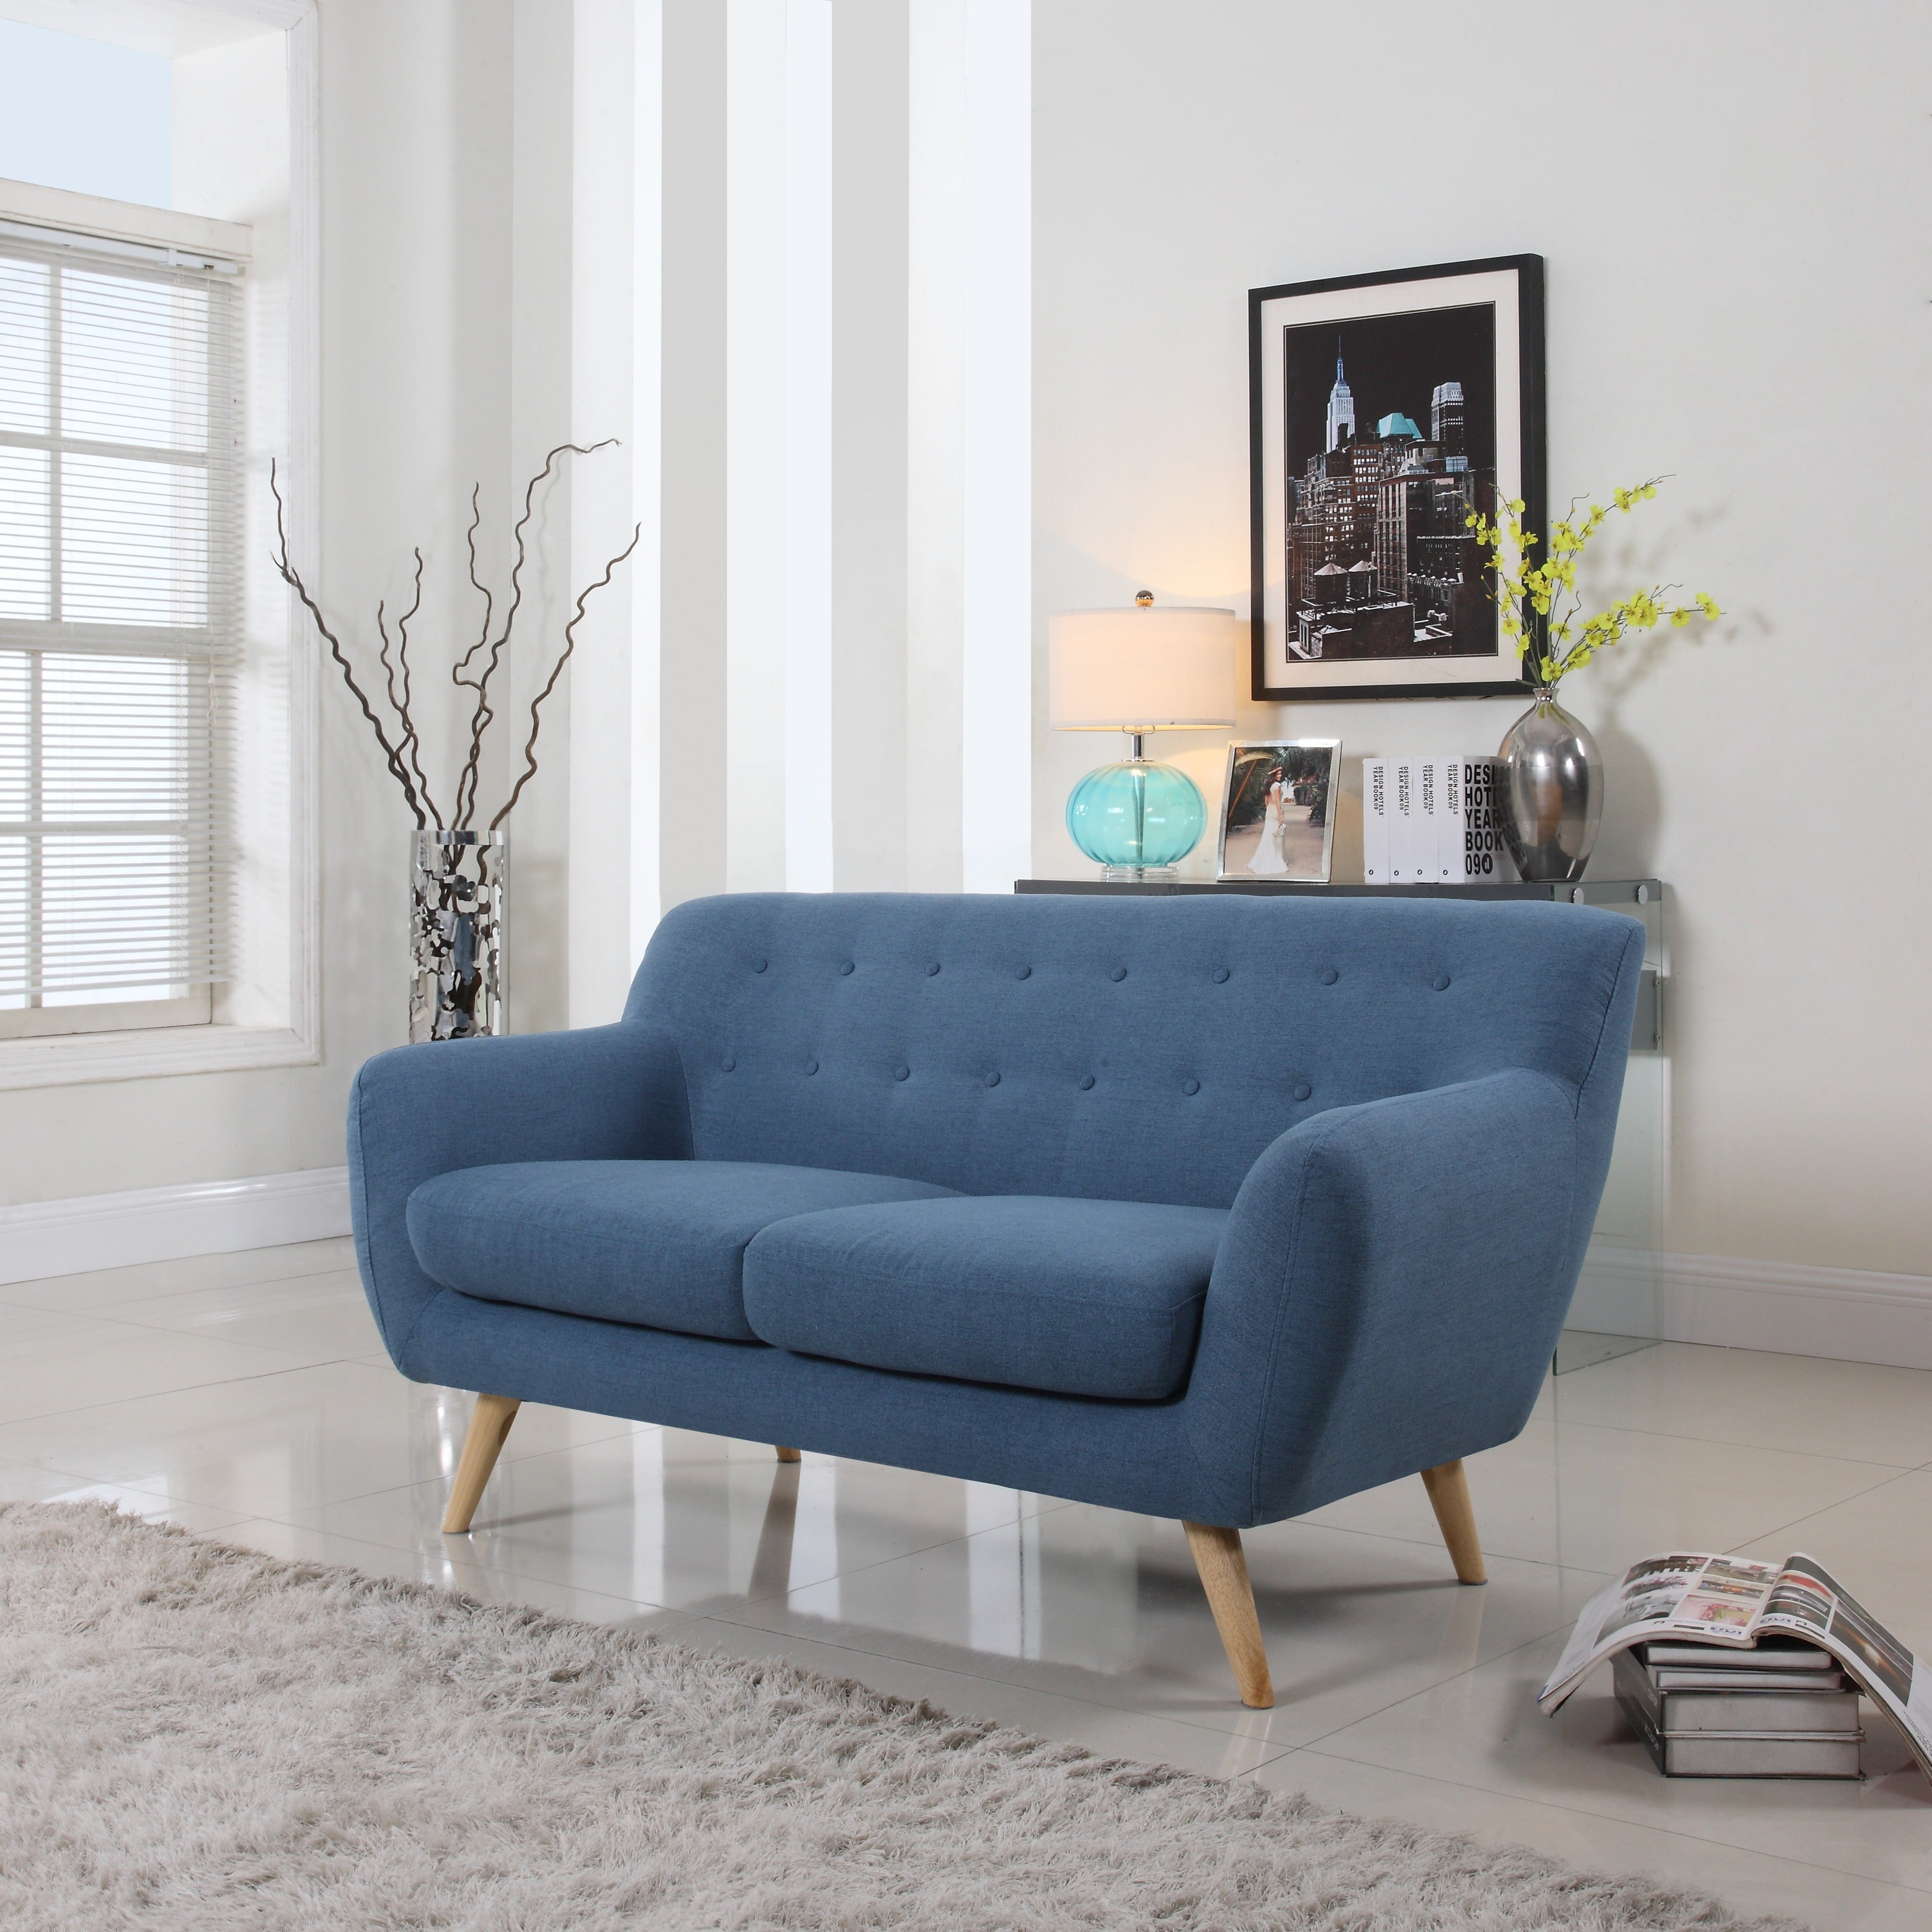 blue seating cushion p view collection t teal lv living sofa furniture quick room sofia modern